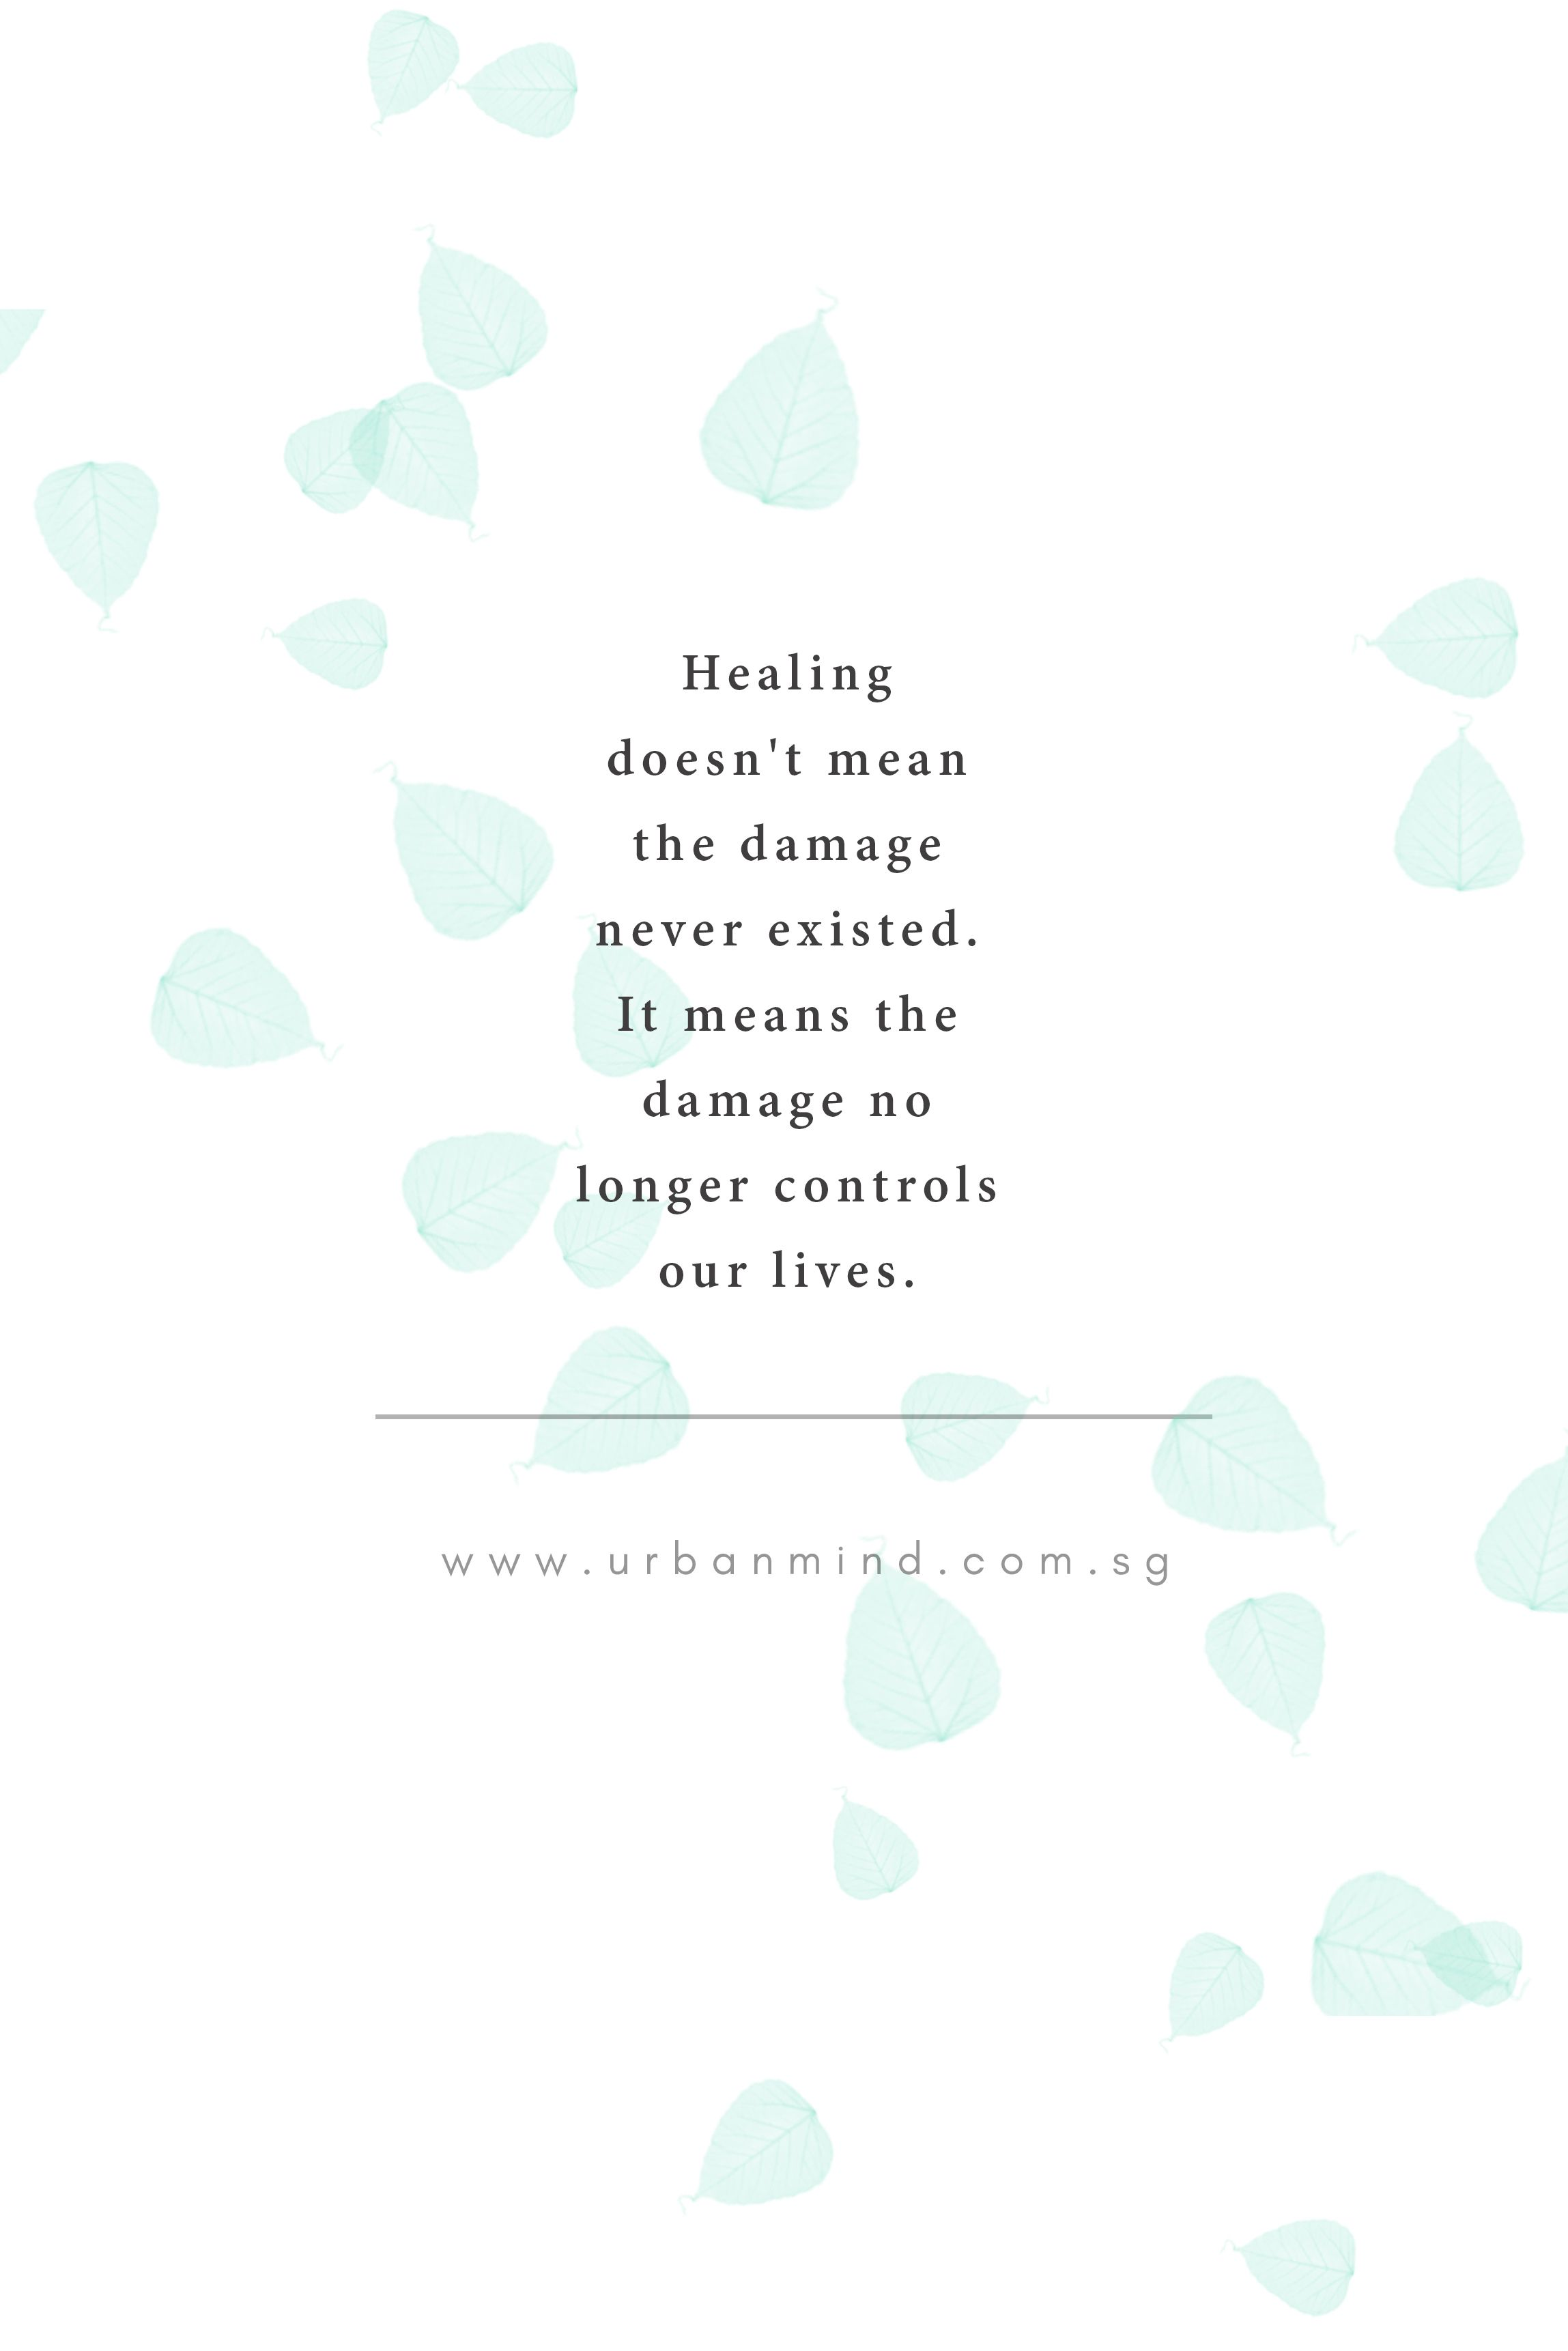 Quotes To Help Depression Pinurbanmind  Abundance Coach On Energy Healing  Heal